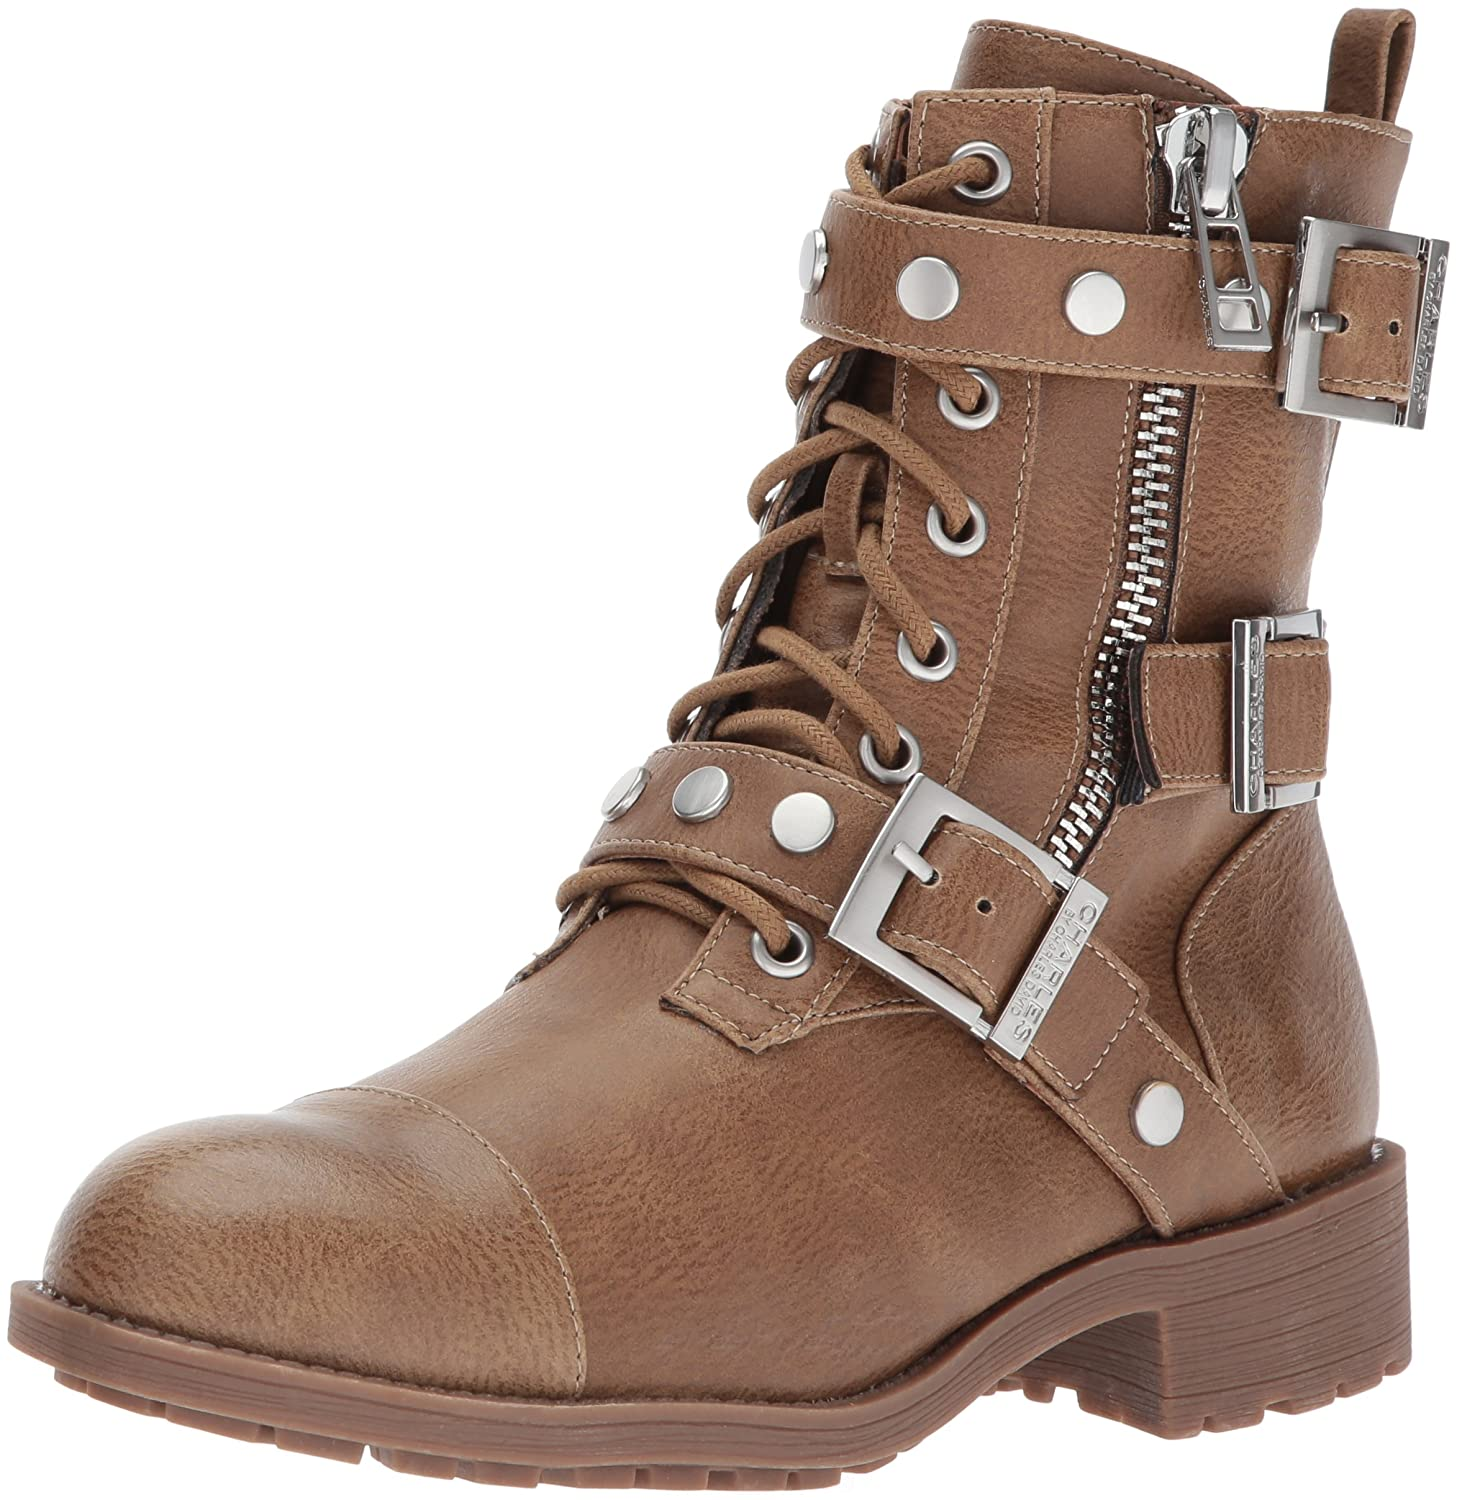 Charles by Charles David Women's Colt Motorcycle Boot B06XCXP6RN 5.5 B(M) US|Taupe